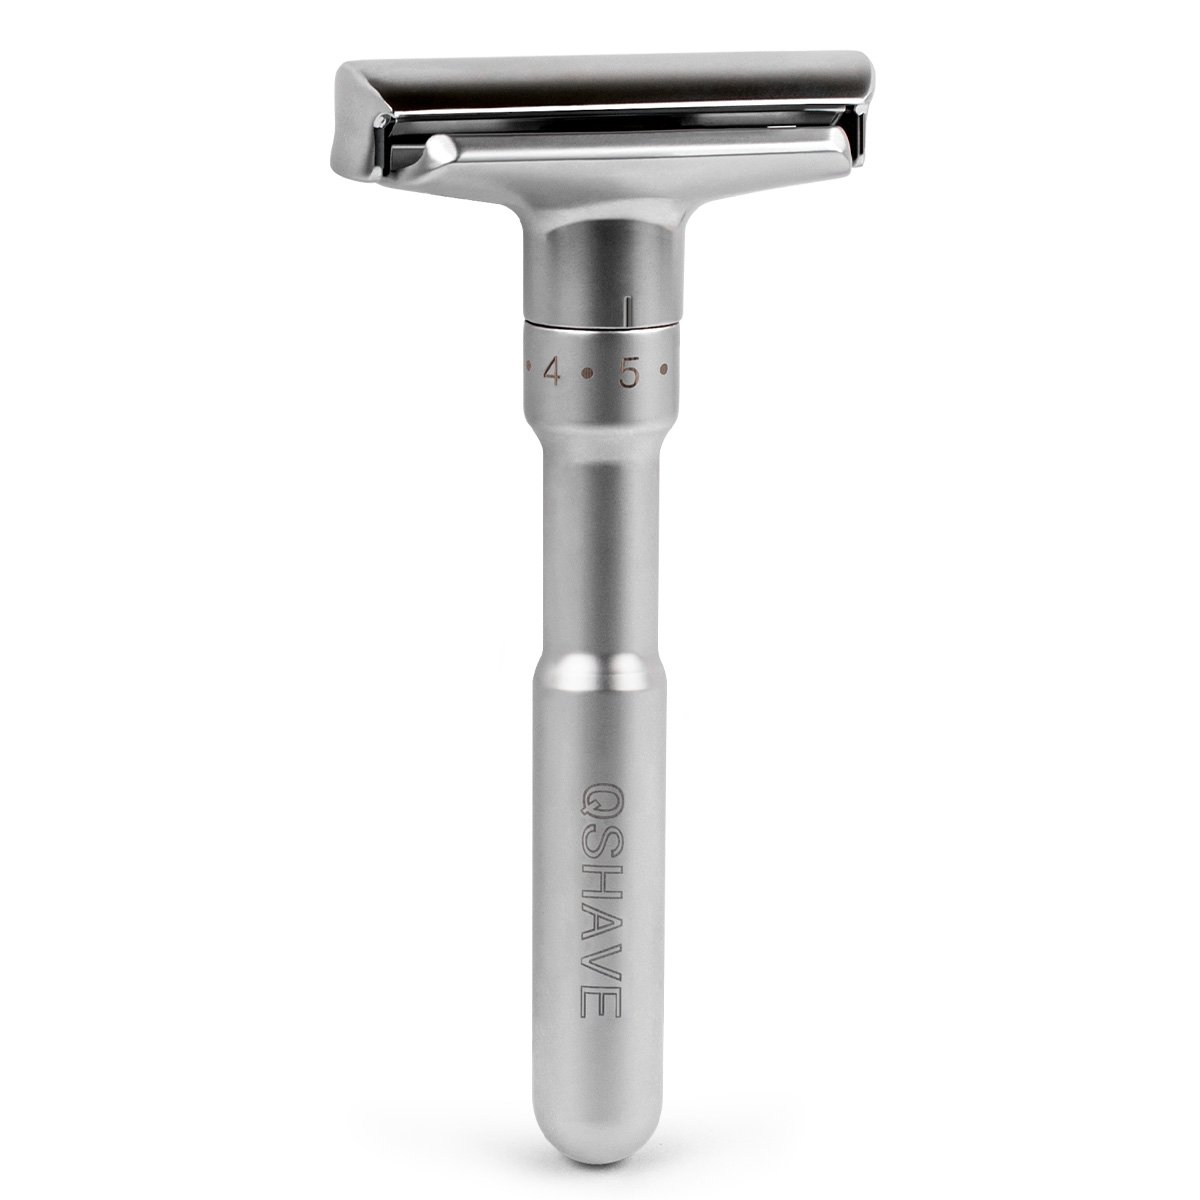 Qshave Adjustable Double Edge Safety Razor 700 (1 Razor And 1 Clean Brush) by Amazon